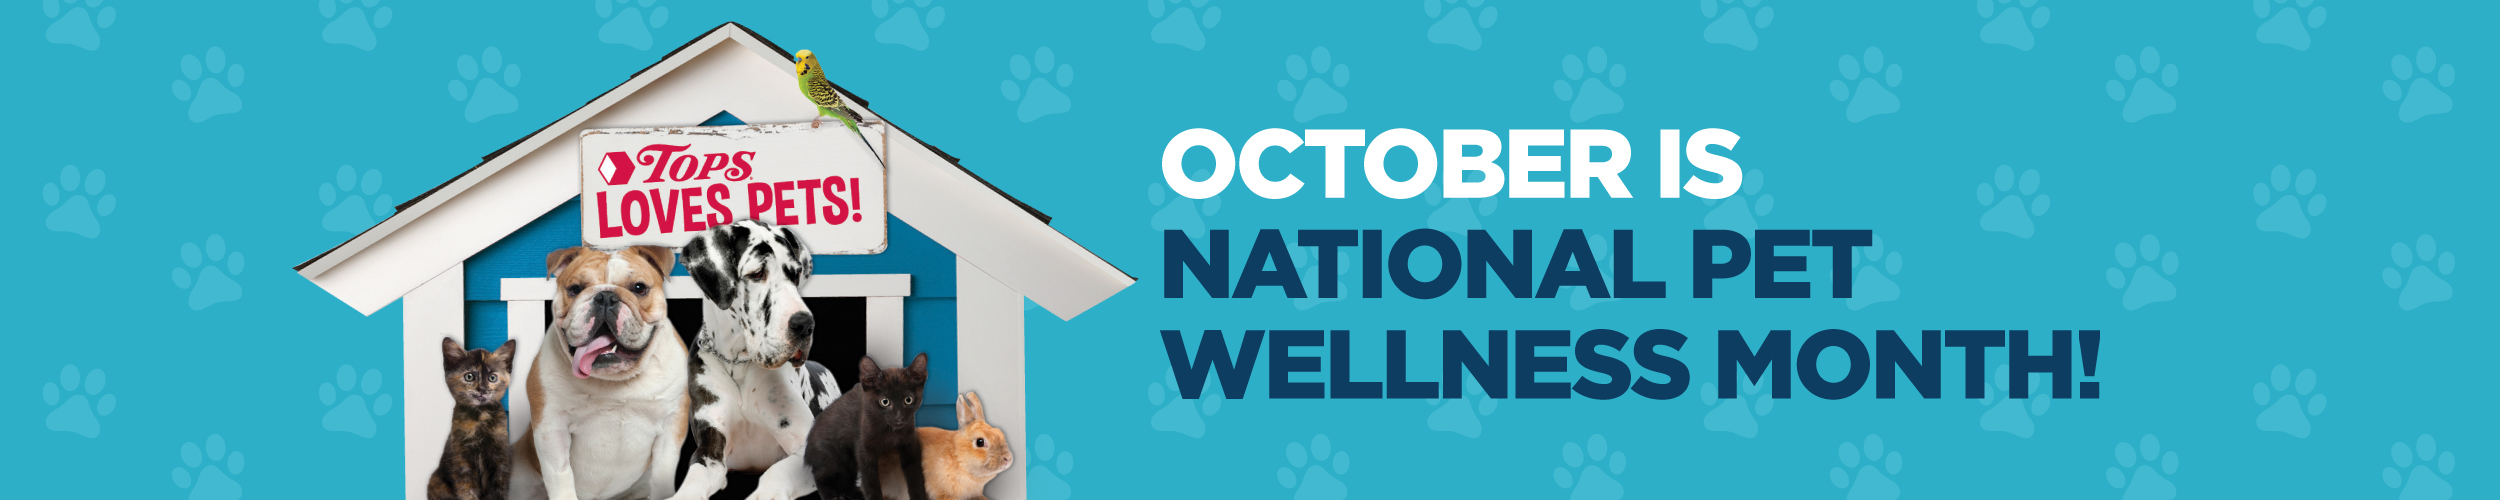 October is Natoions Pet Wellness Month